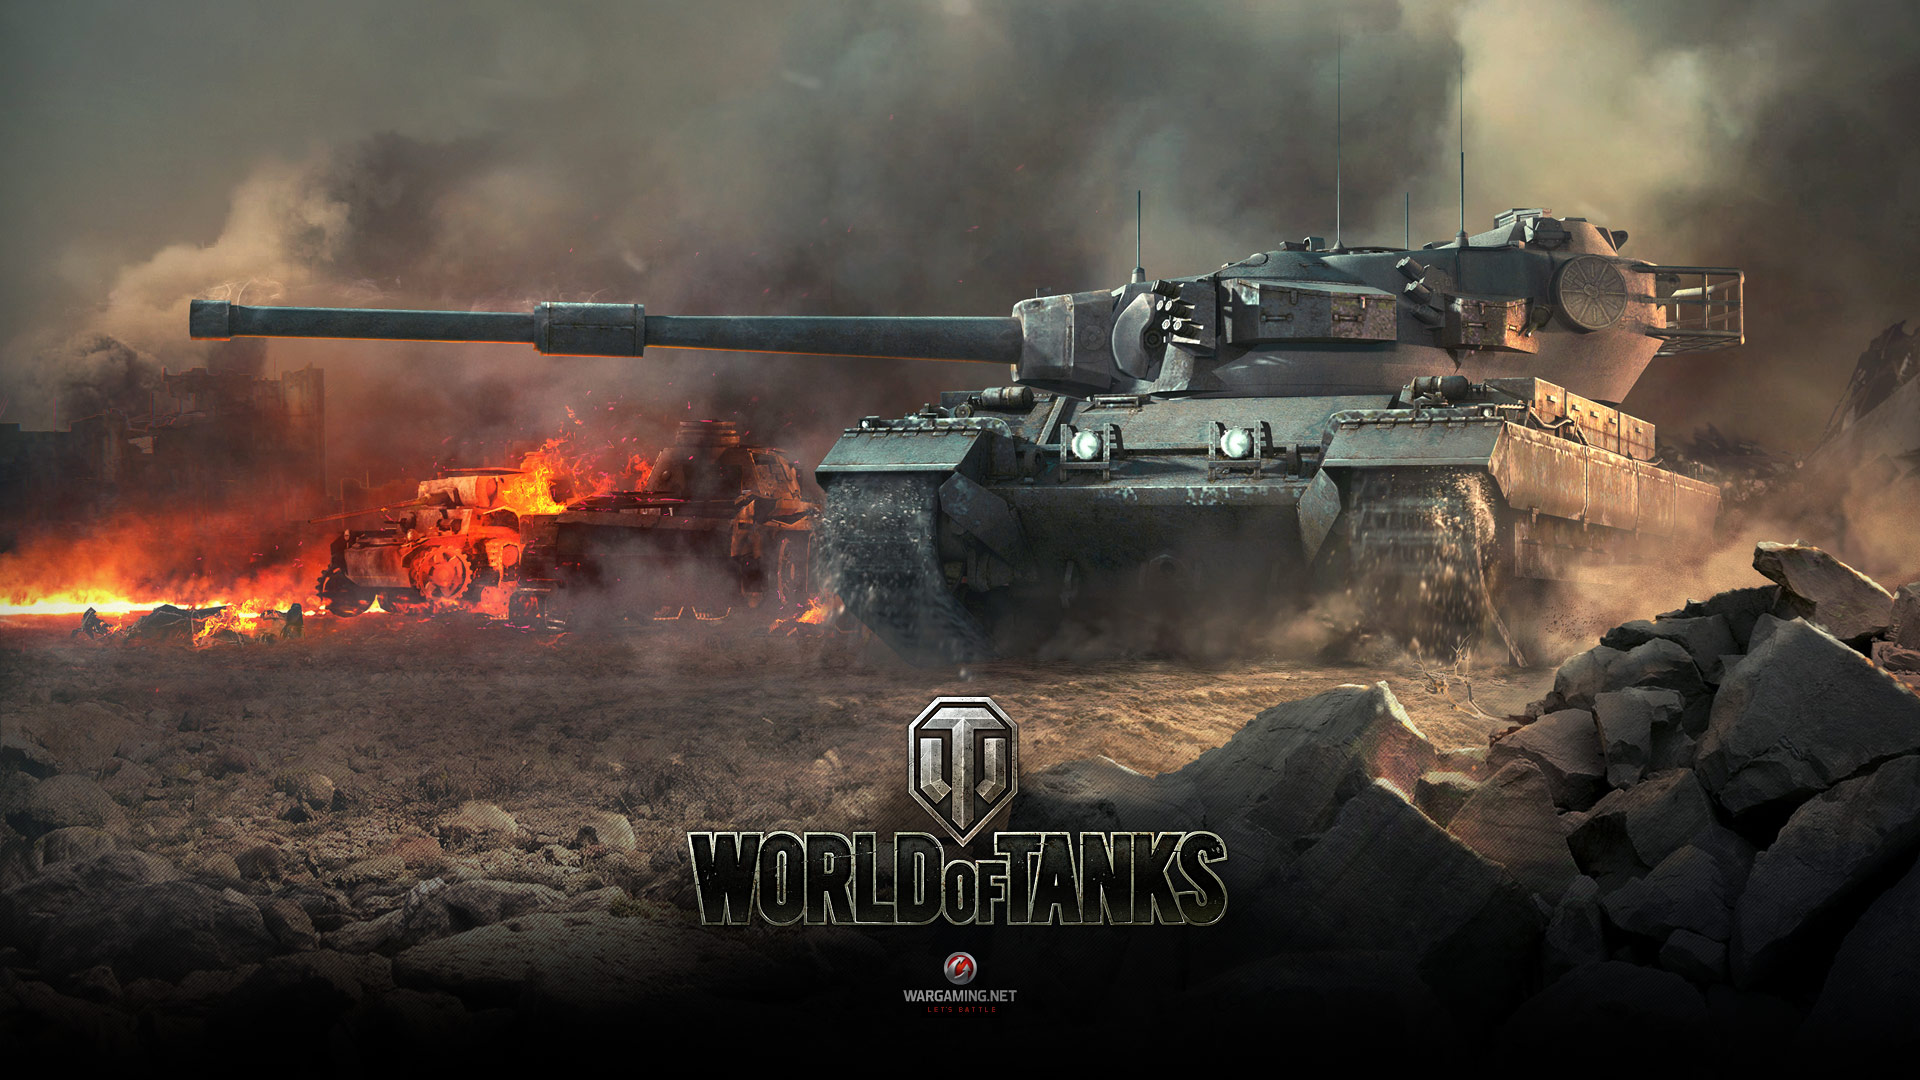 Razer Making Custom-Designed Peripherals for World of Tanks